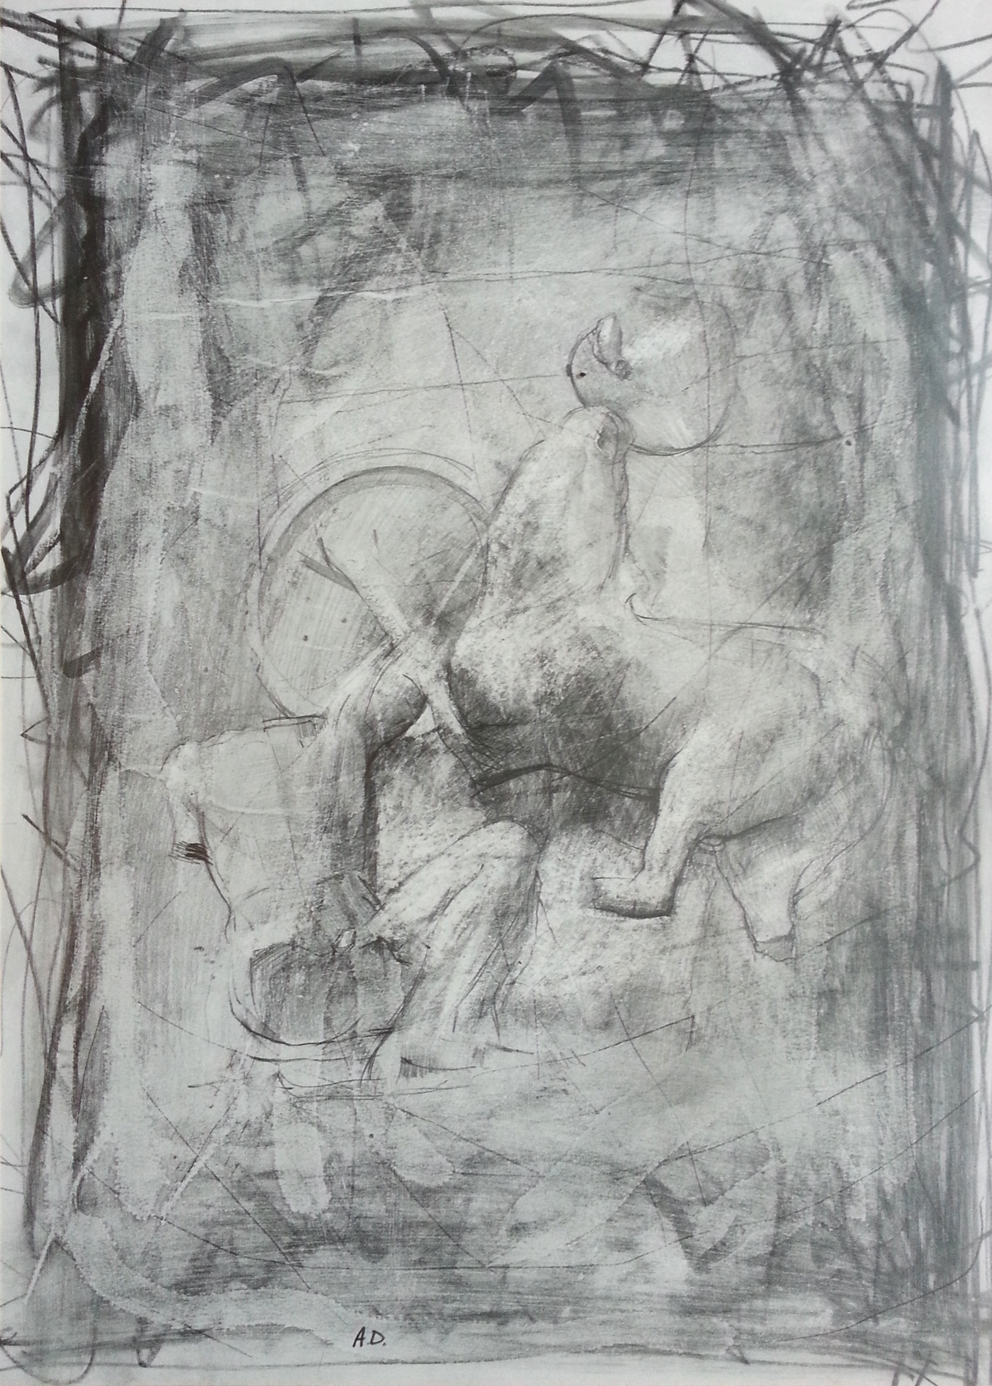 drawing of lapith & centaur by alan dedman